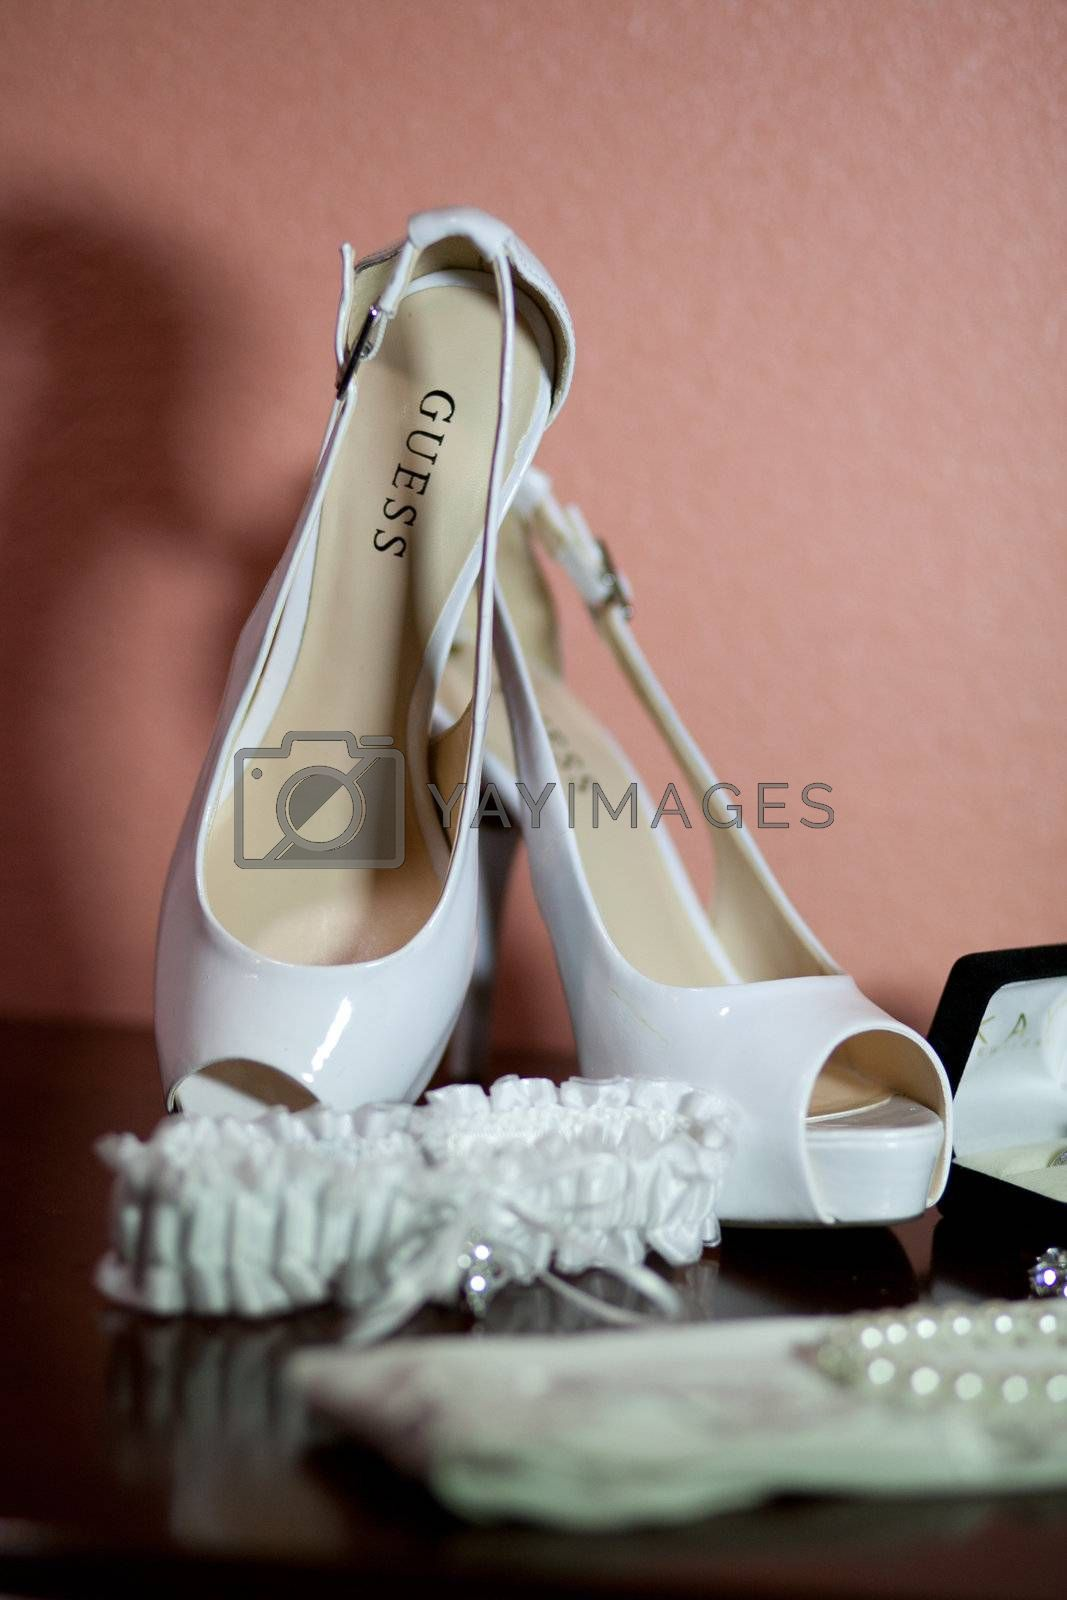 Bride's wedding shoes and other details against a wall